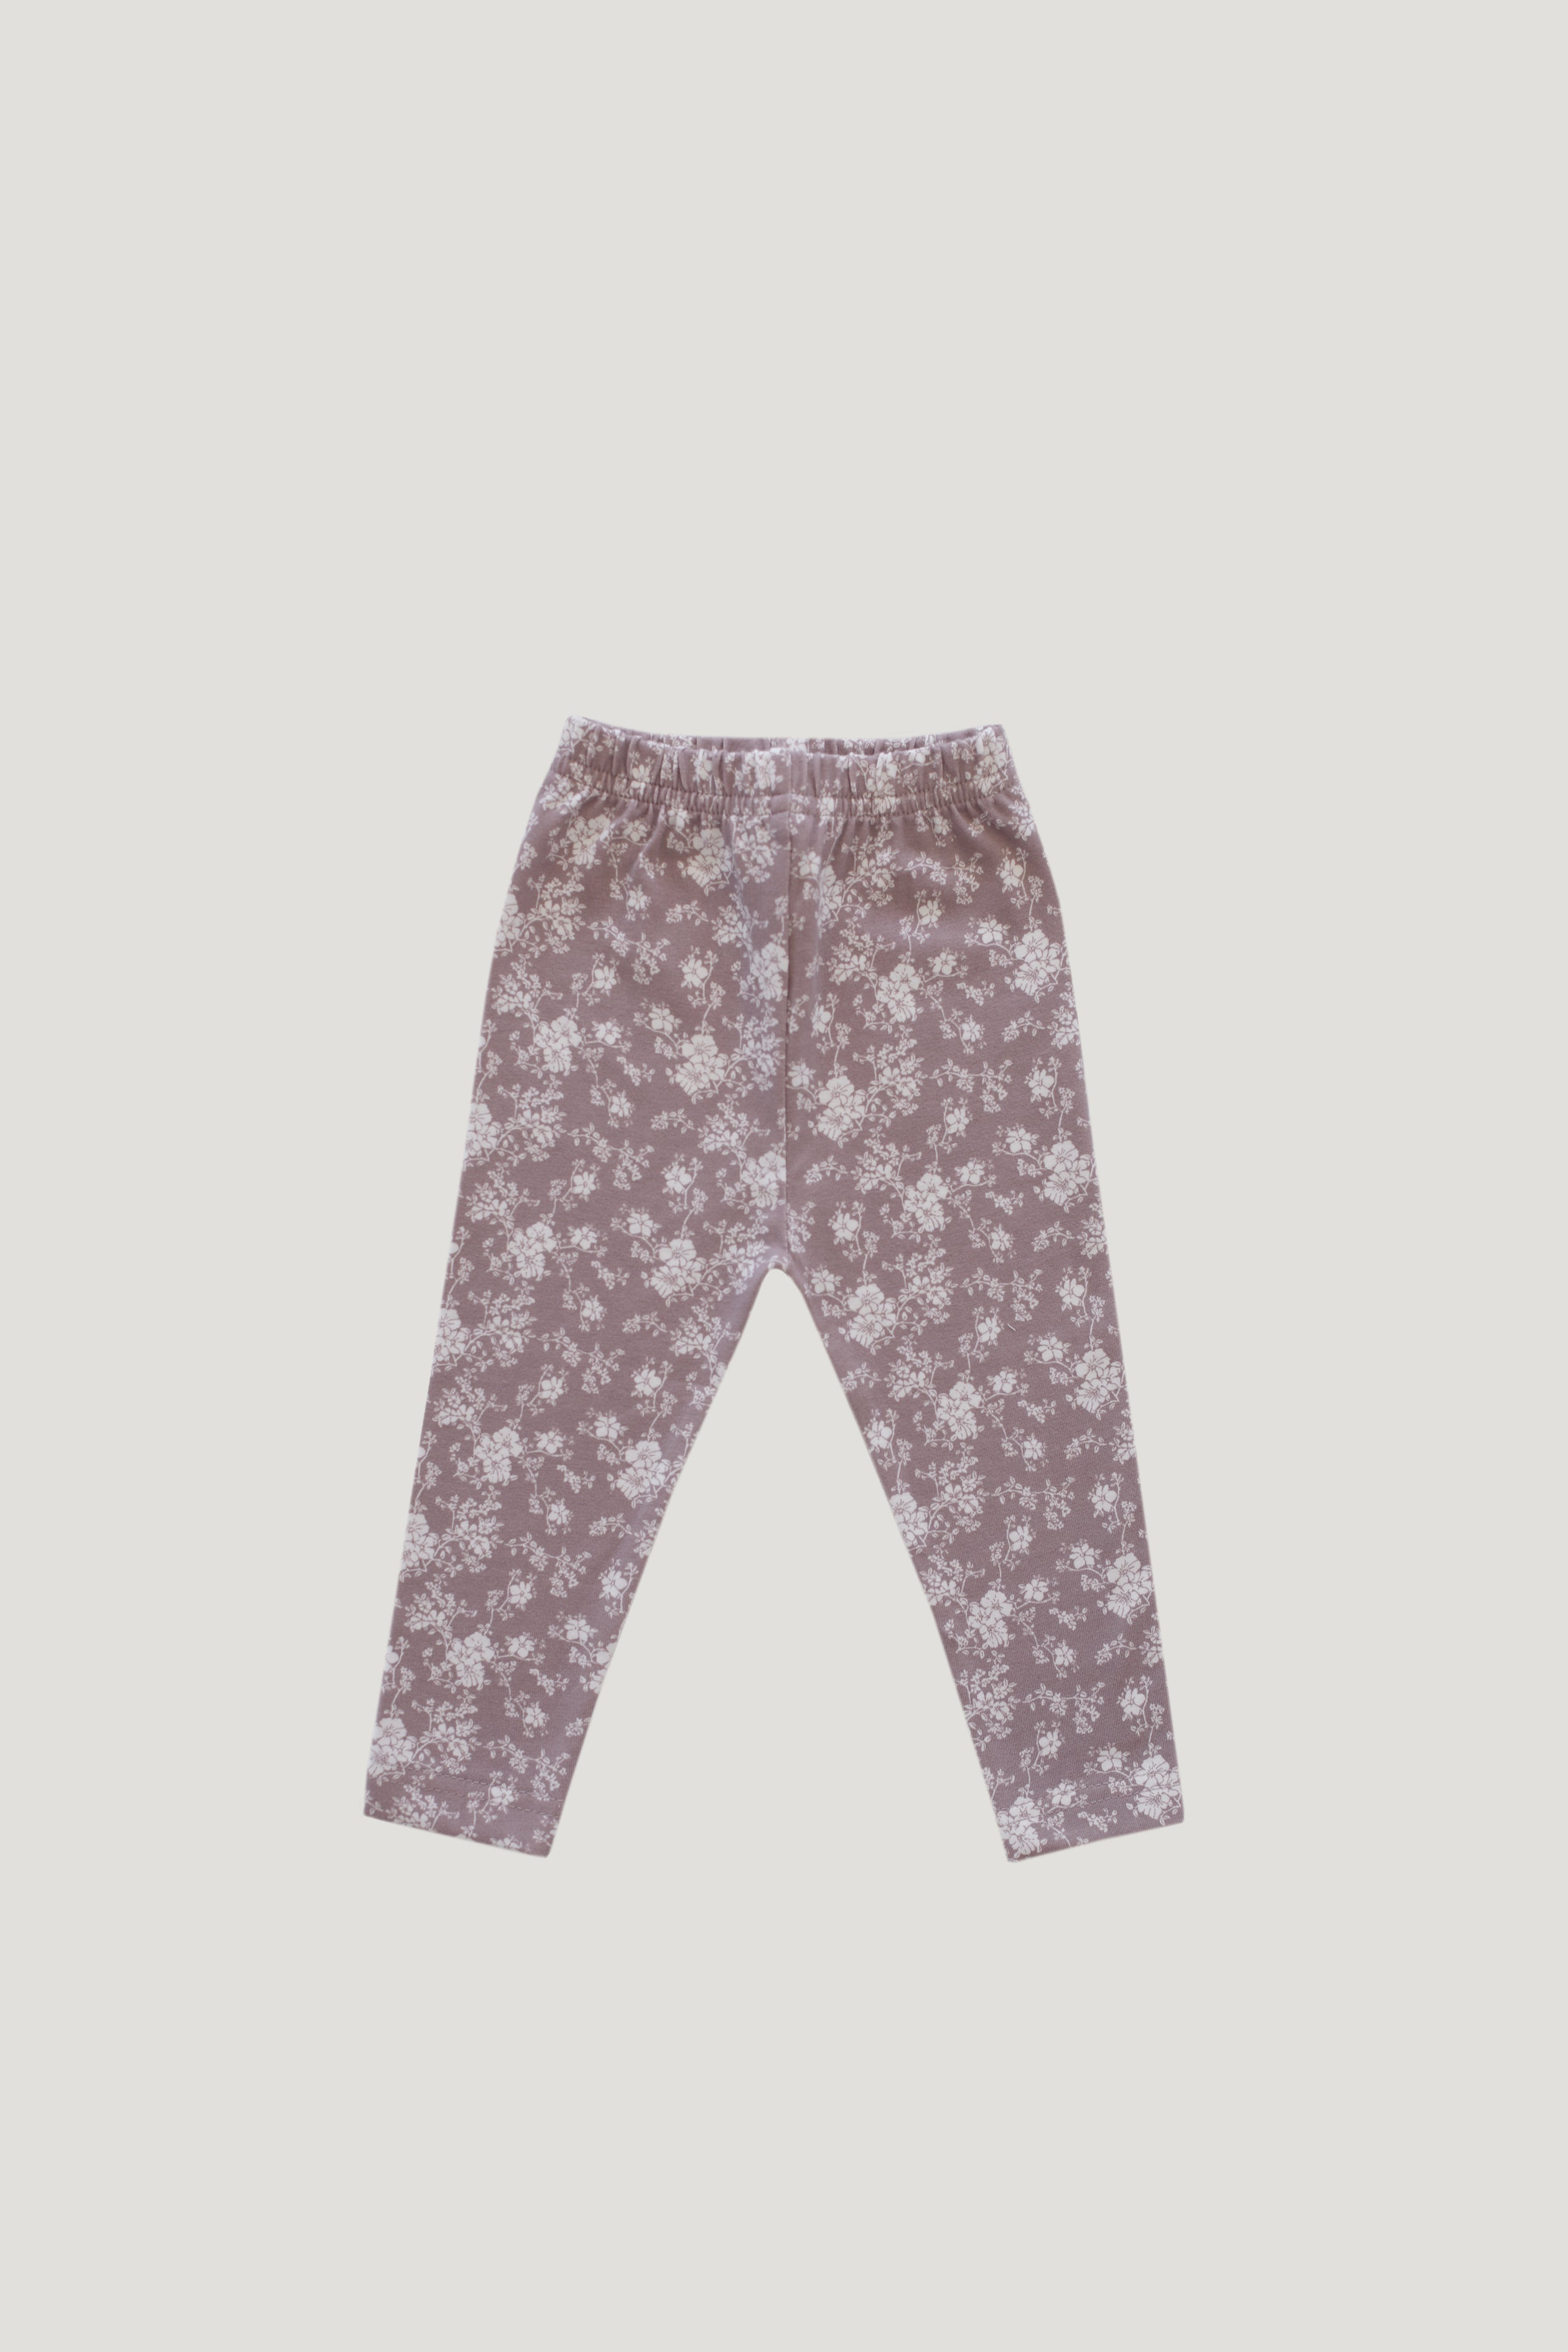 Fawn Floral Leggings